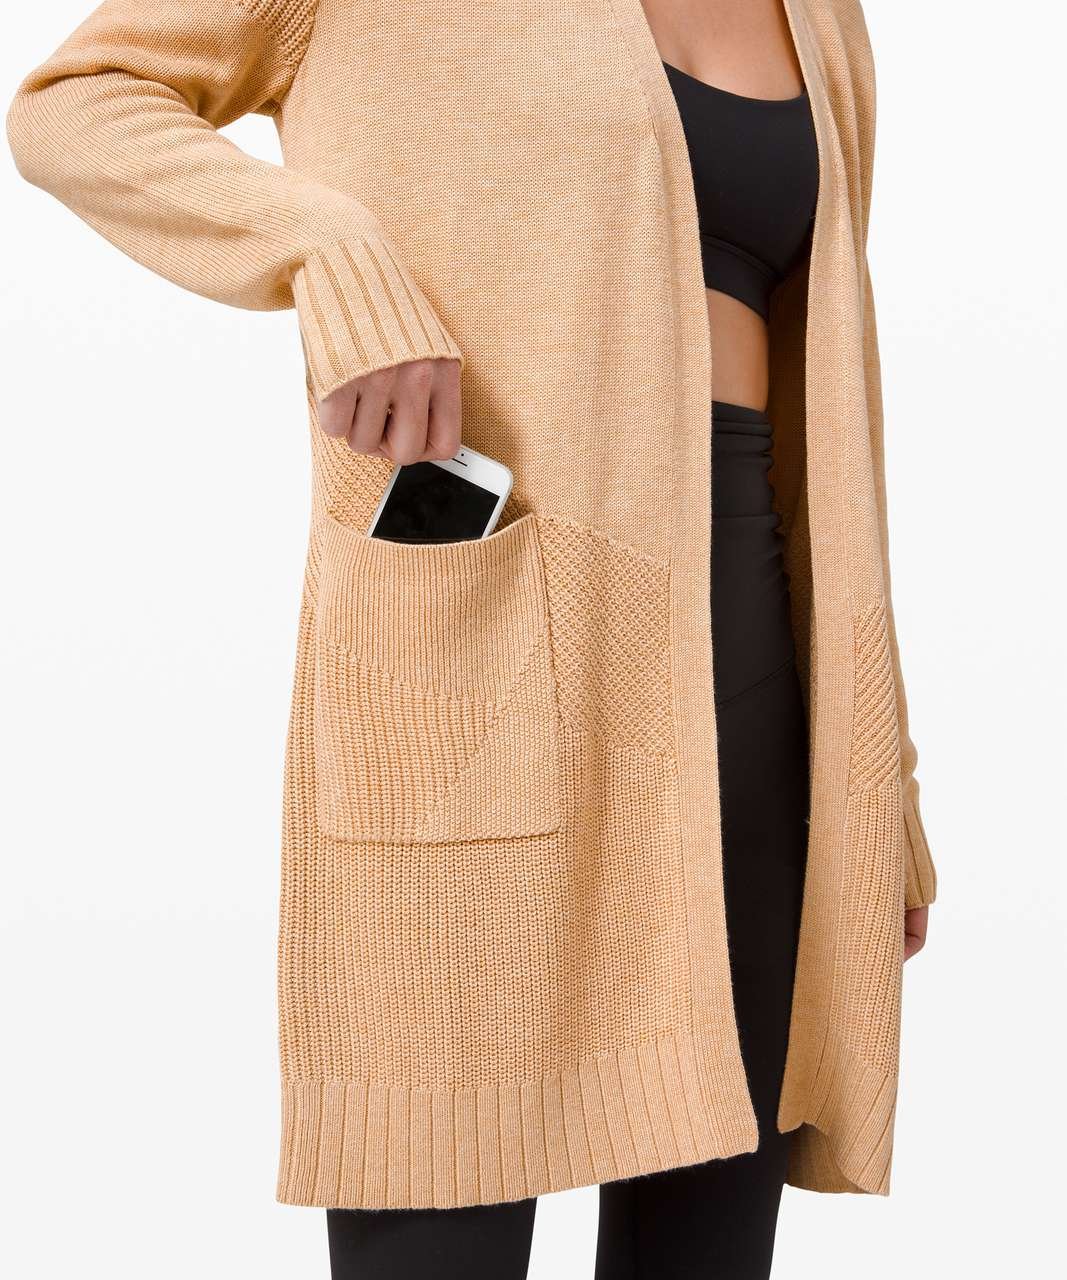 Lululemon Sincerely Yours Wrap Sweater - Heathered Ivory Peach